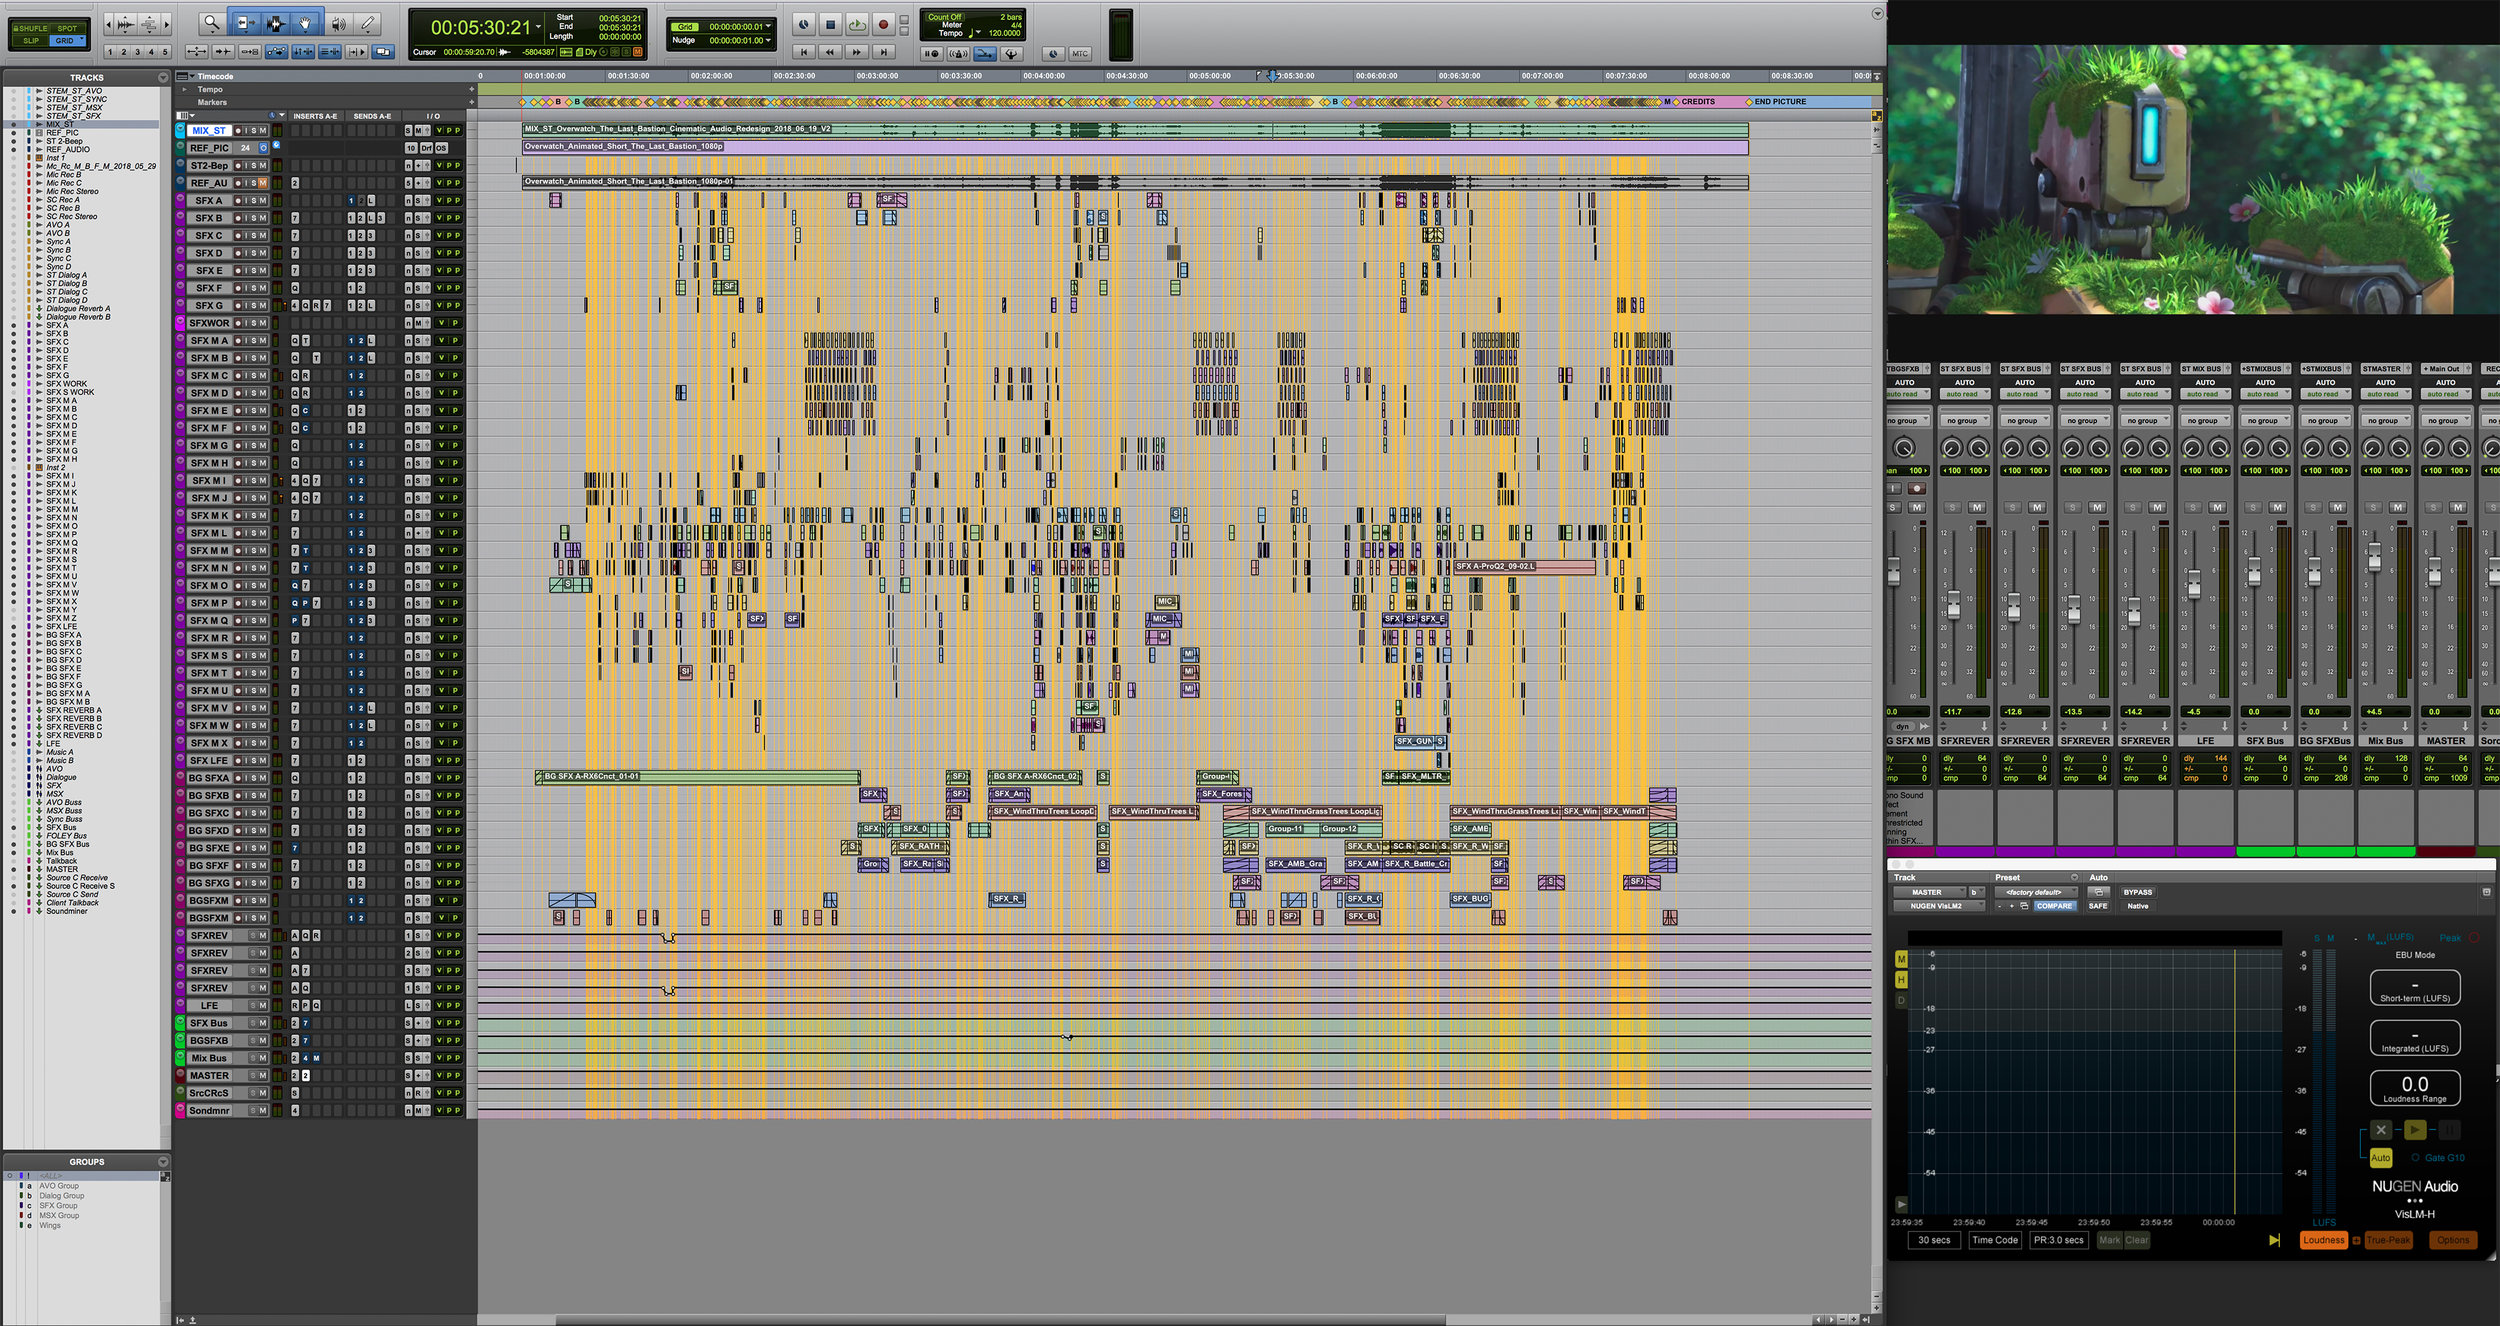 Here's a screenshot of my Pro Tools session. As you can see, there's a few markers.